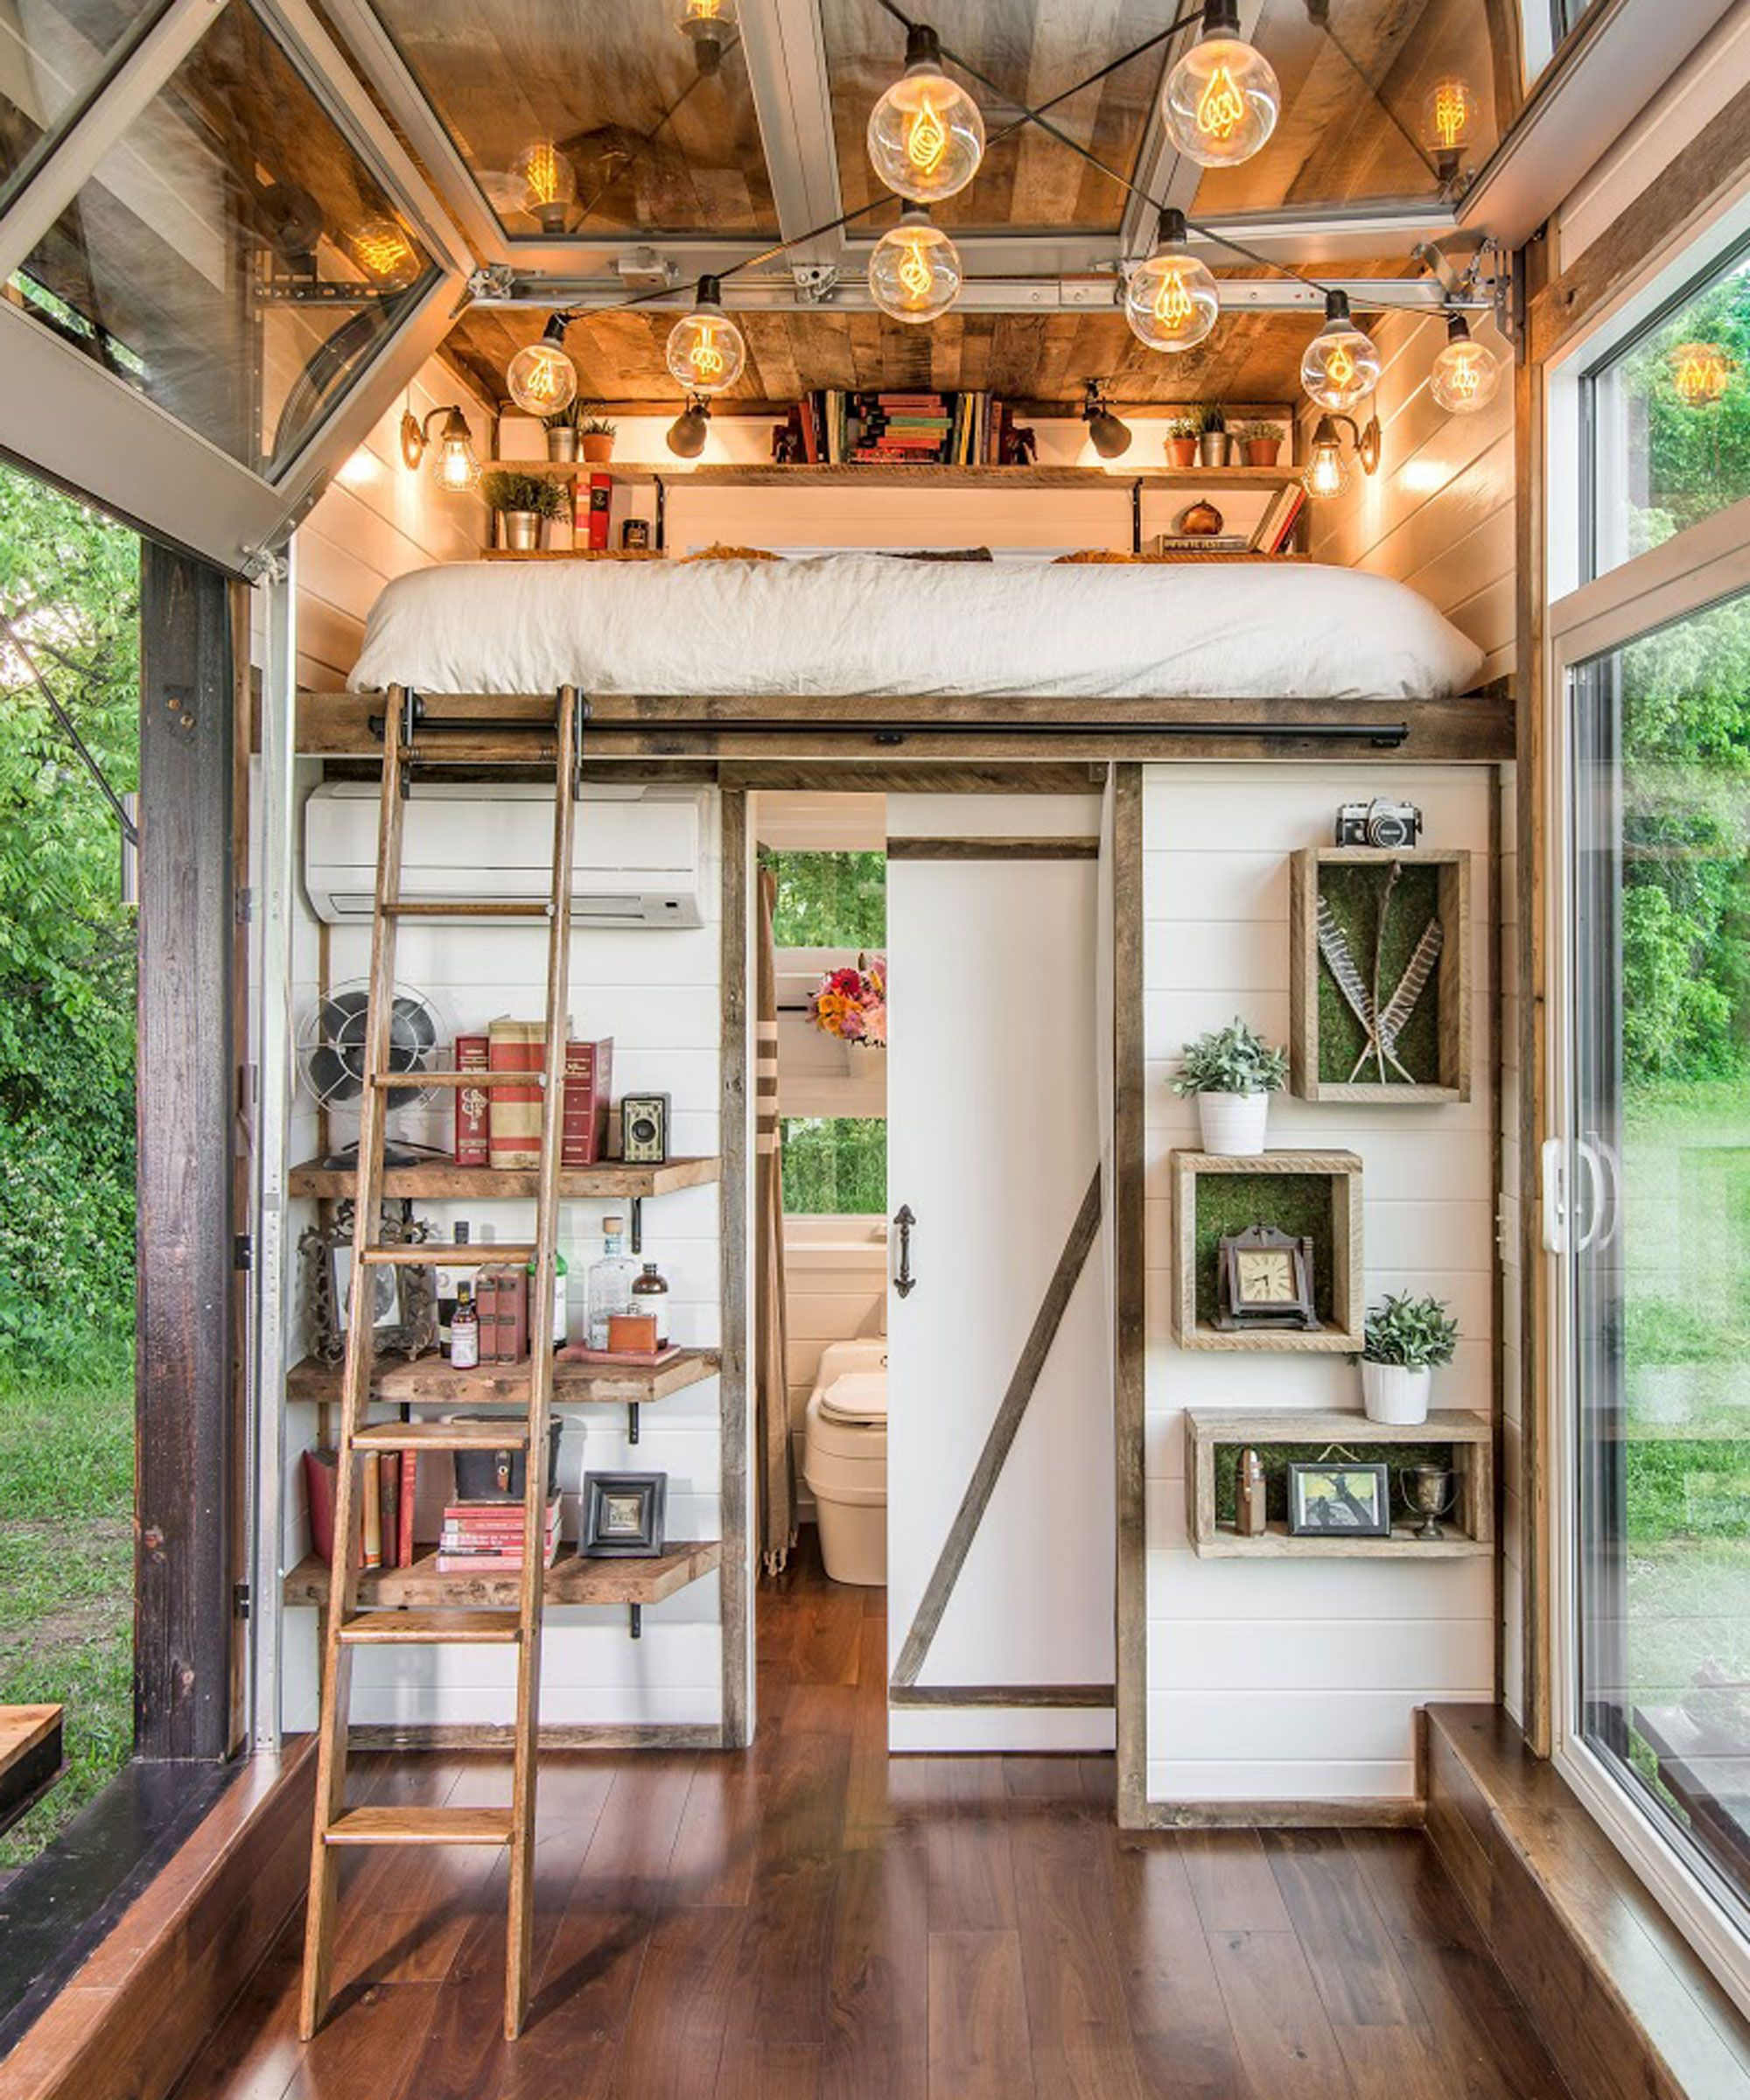 Small Houses: This Gorgeous Tiny House Is Proof That Size Doesn't Matter